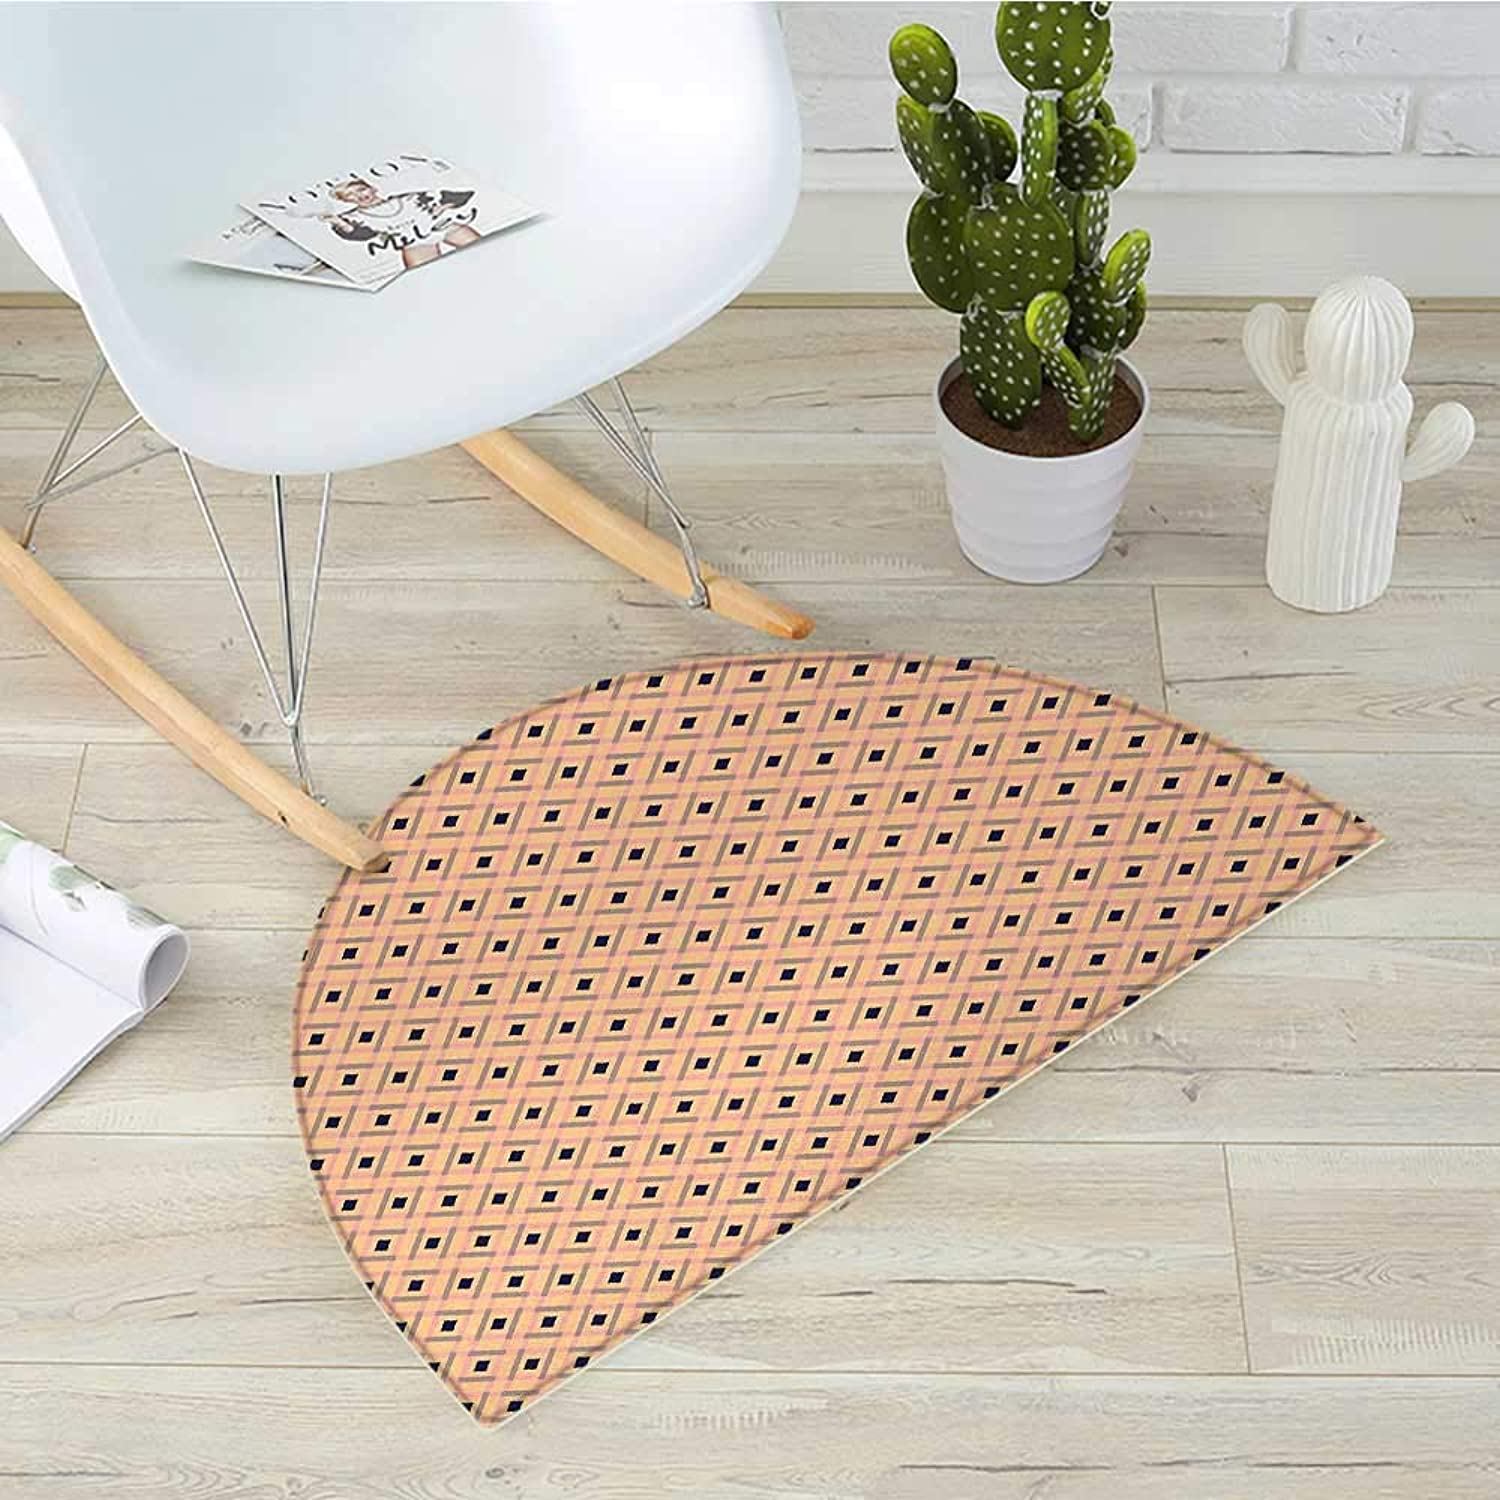 Argyle Semicircular CushionDiagonal Stripes and Rhombuses Geometric Composition Pastel colors Entry Door Mat H 19.7  xD 31.5  Peach Navy bluee Pale Pink